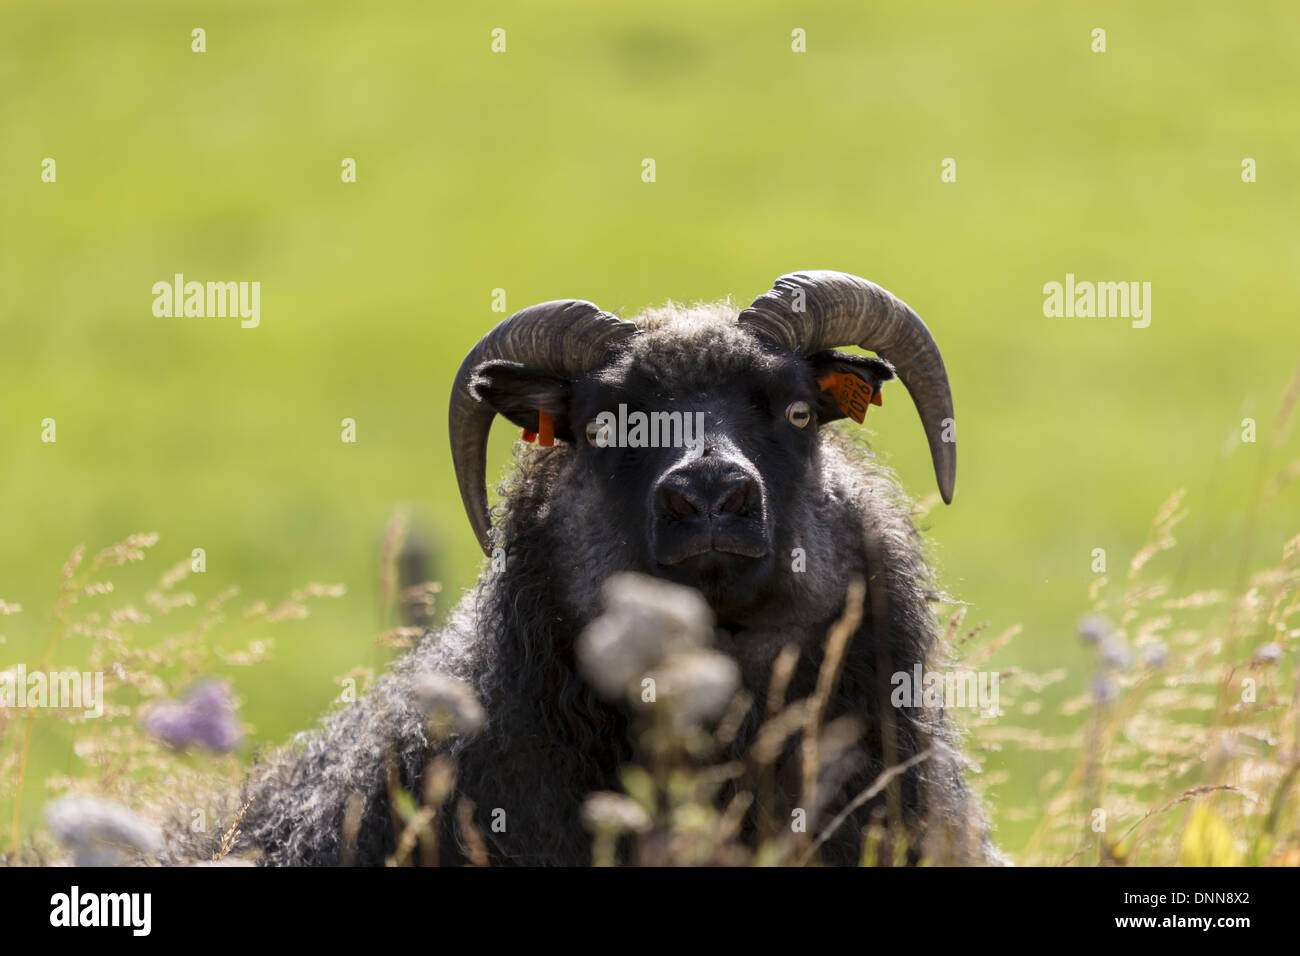 Icelandic sheep with multi coloured fleece and short curly horns looking into camera - Stock Image